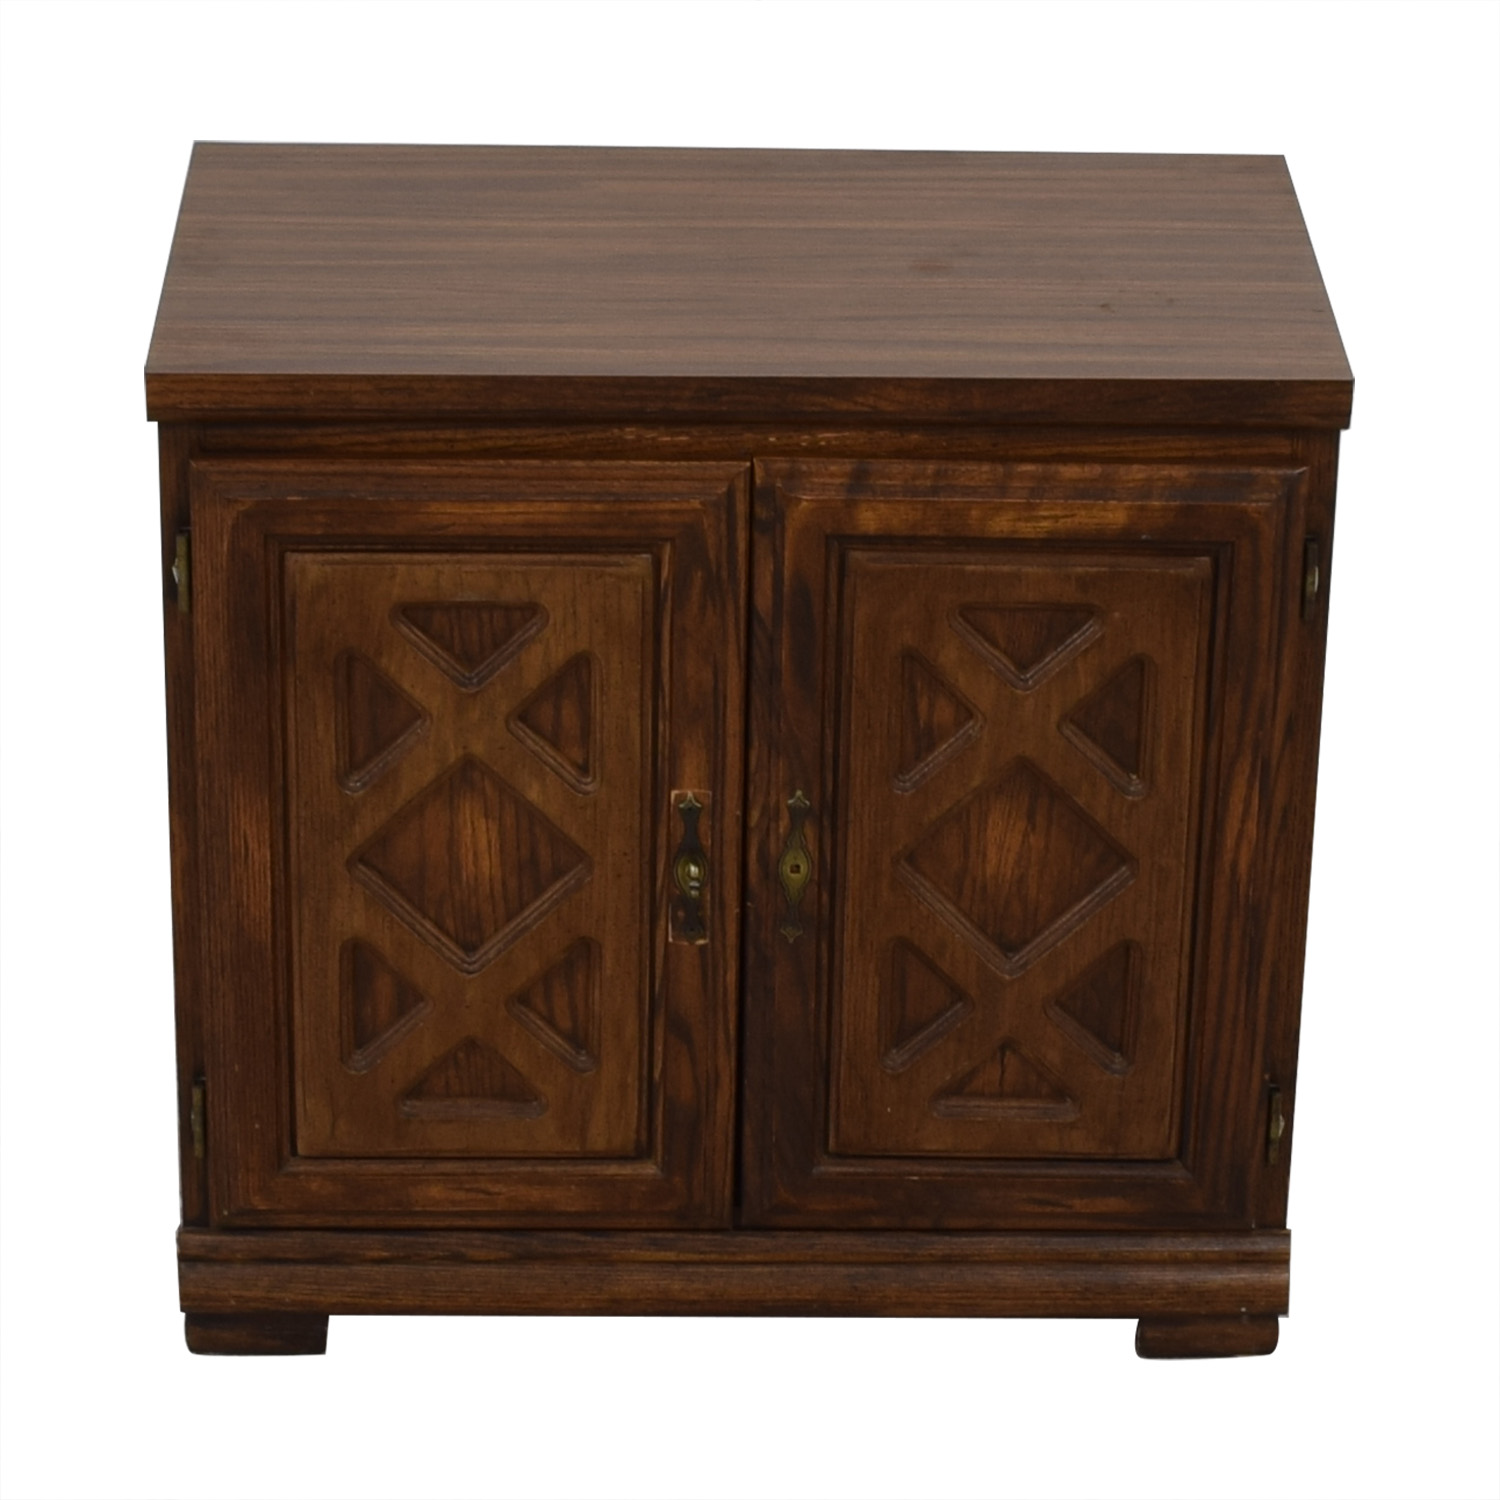 Wood Chest with Shelves / Storage